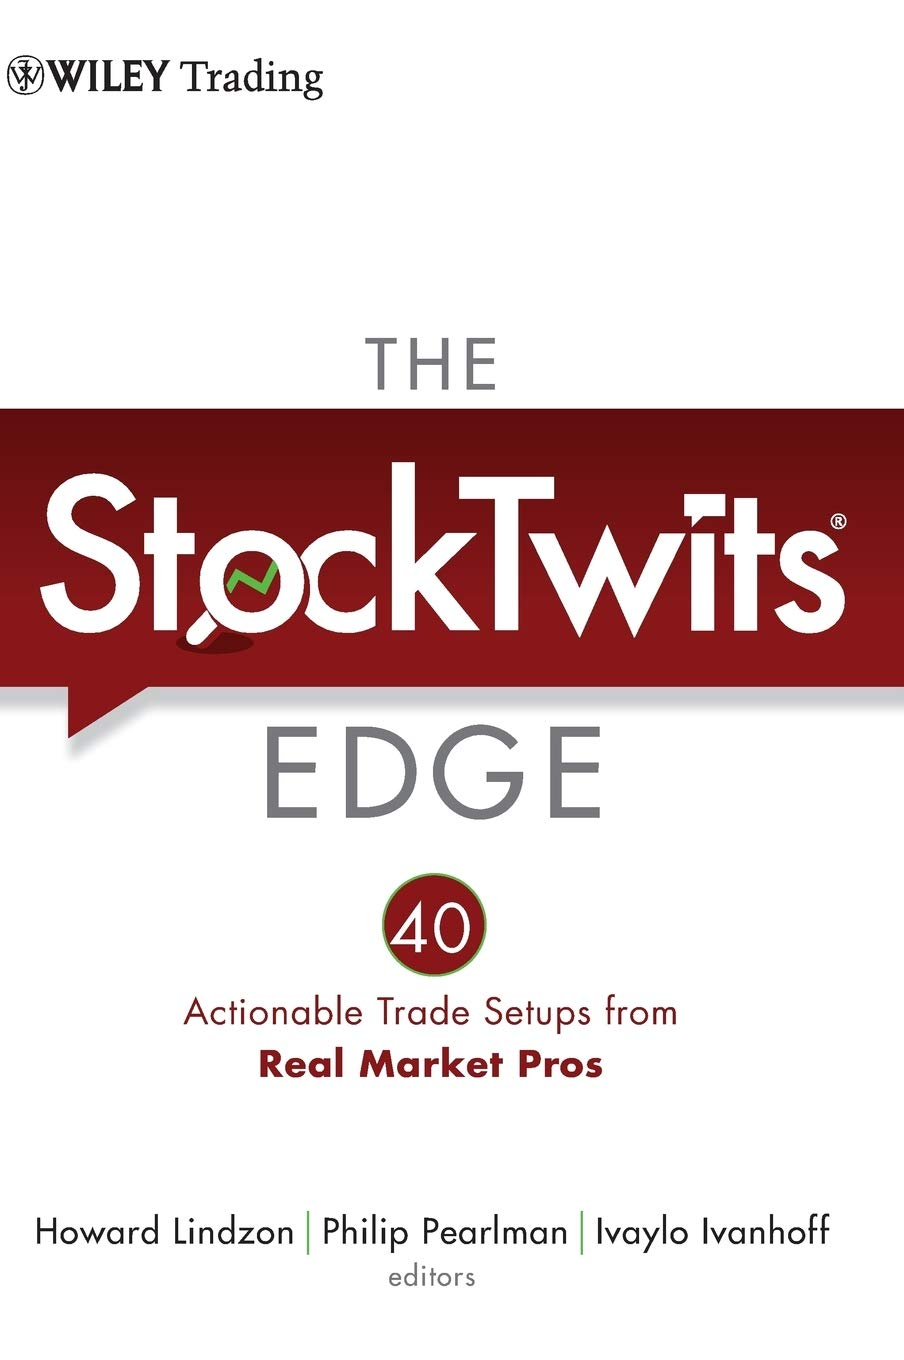 The StockTwits Edge: 7 Actionable Trade Set-Ups from Real Market